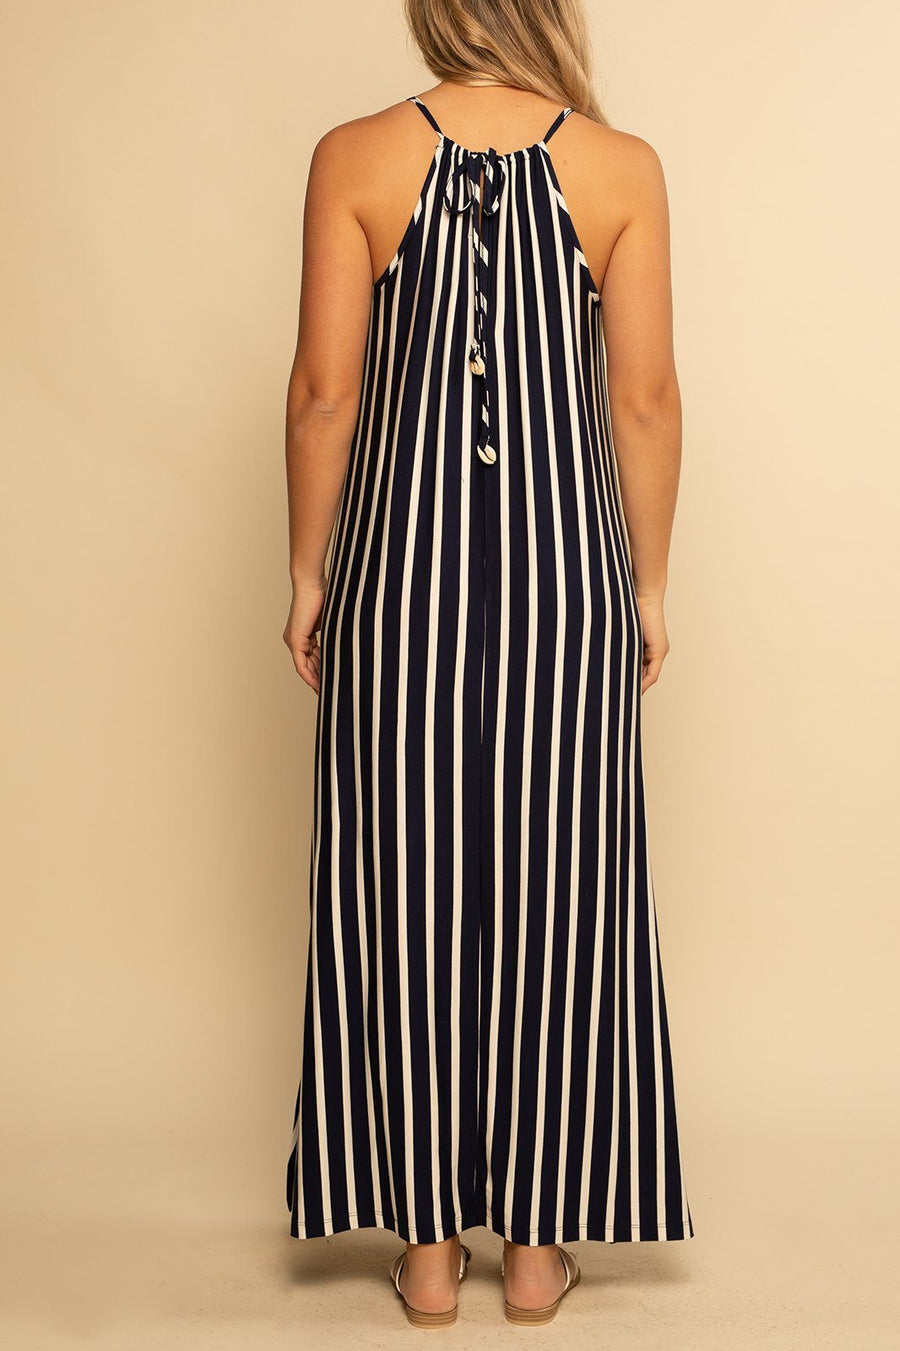 Marbella Maxi - Navy Stripes - Shore